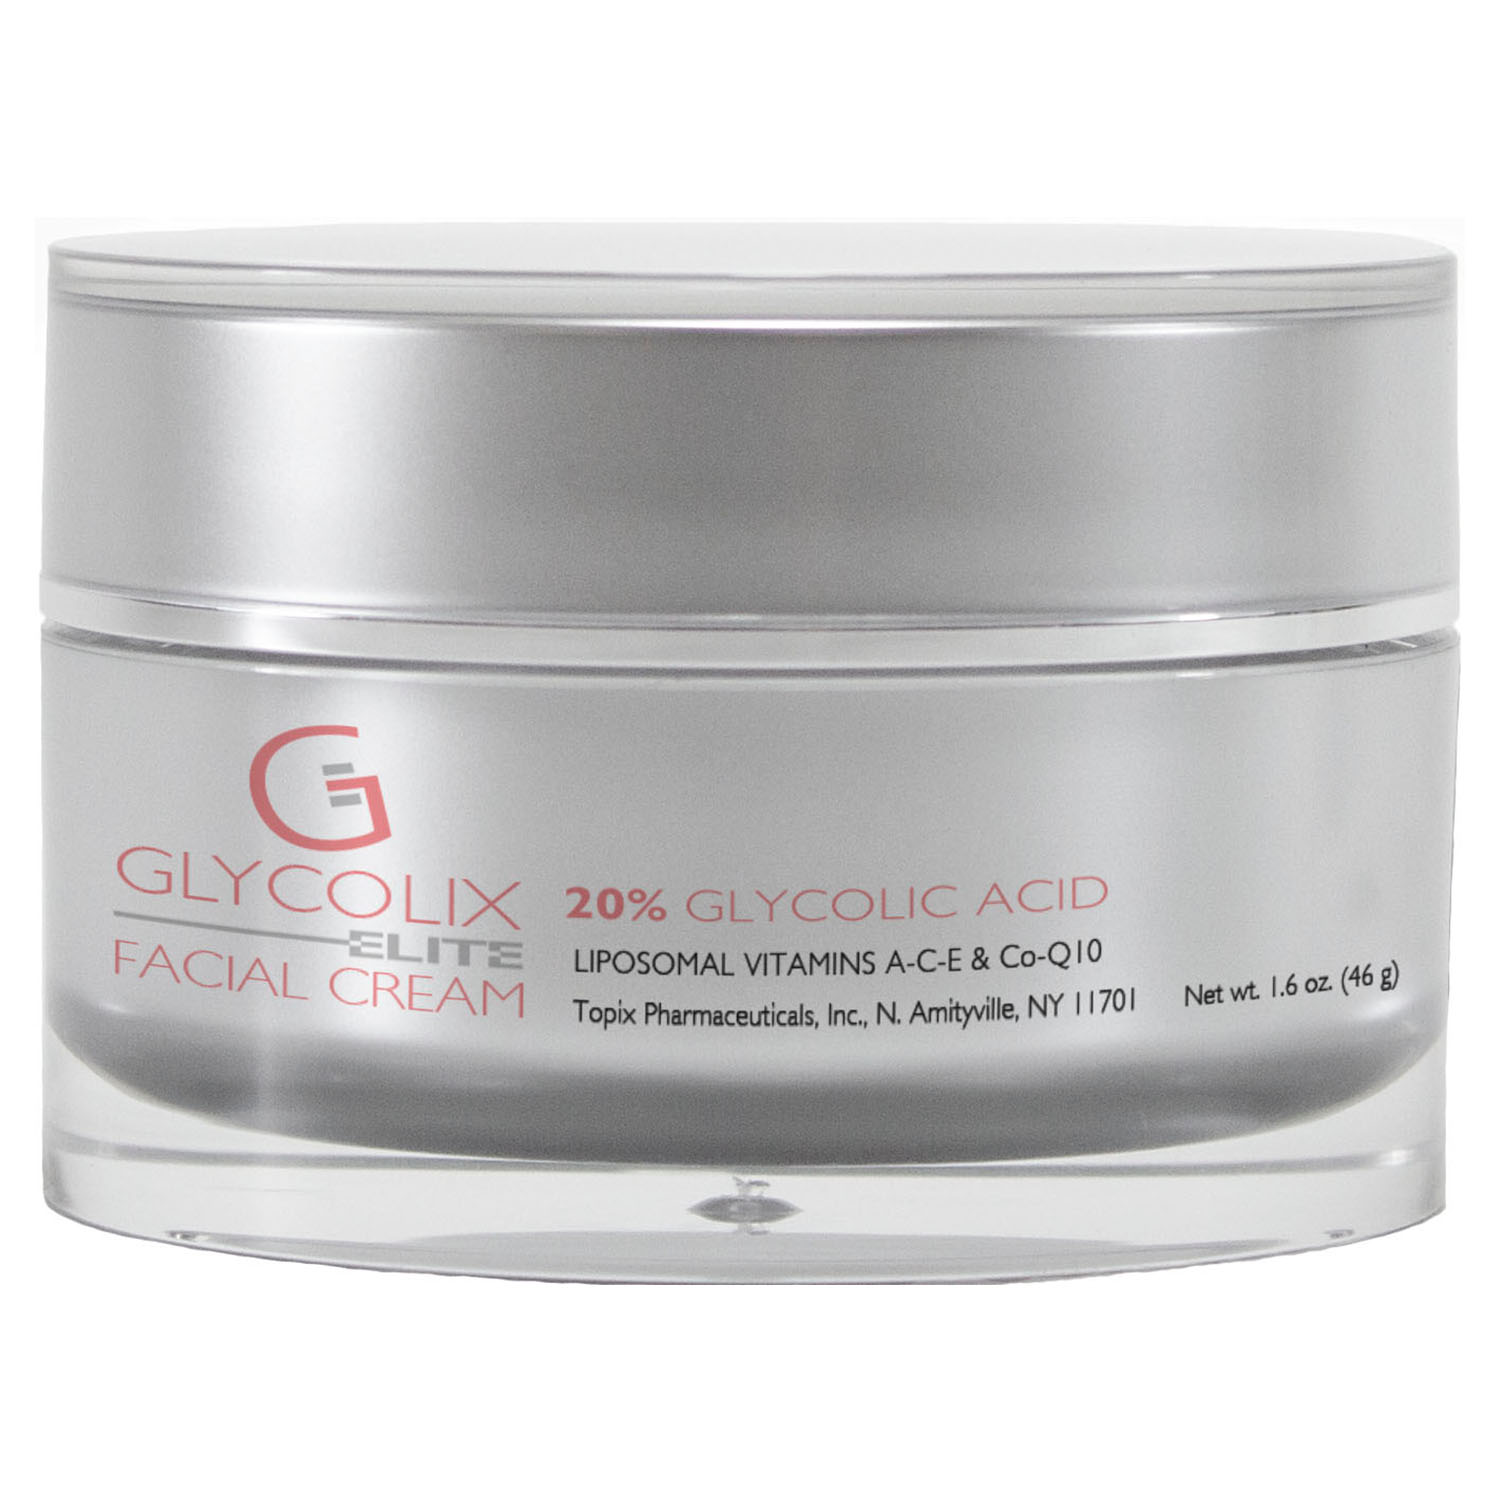 Glycolix ELITE FACIAL CREAM 20% (1.6 oz / 46 g)